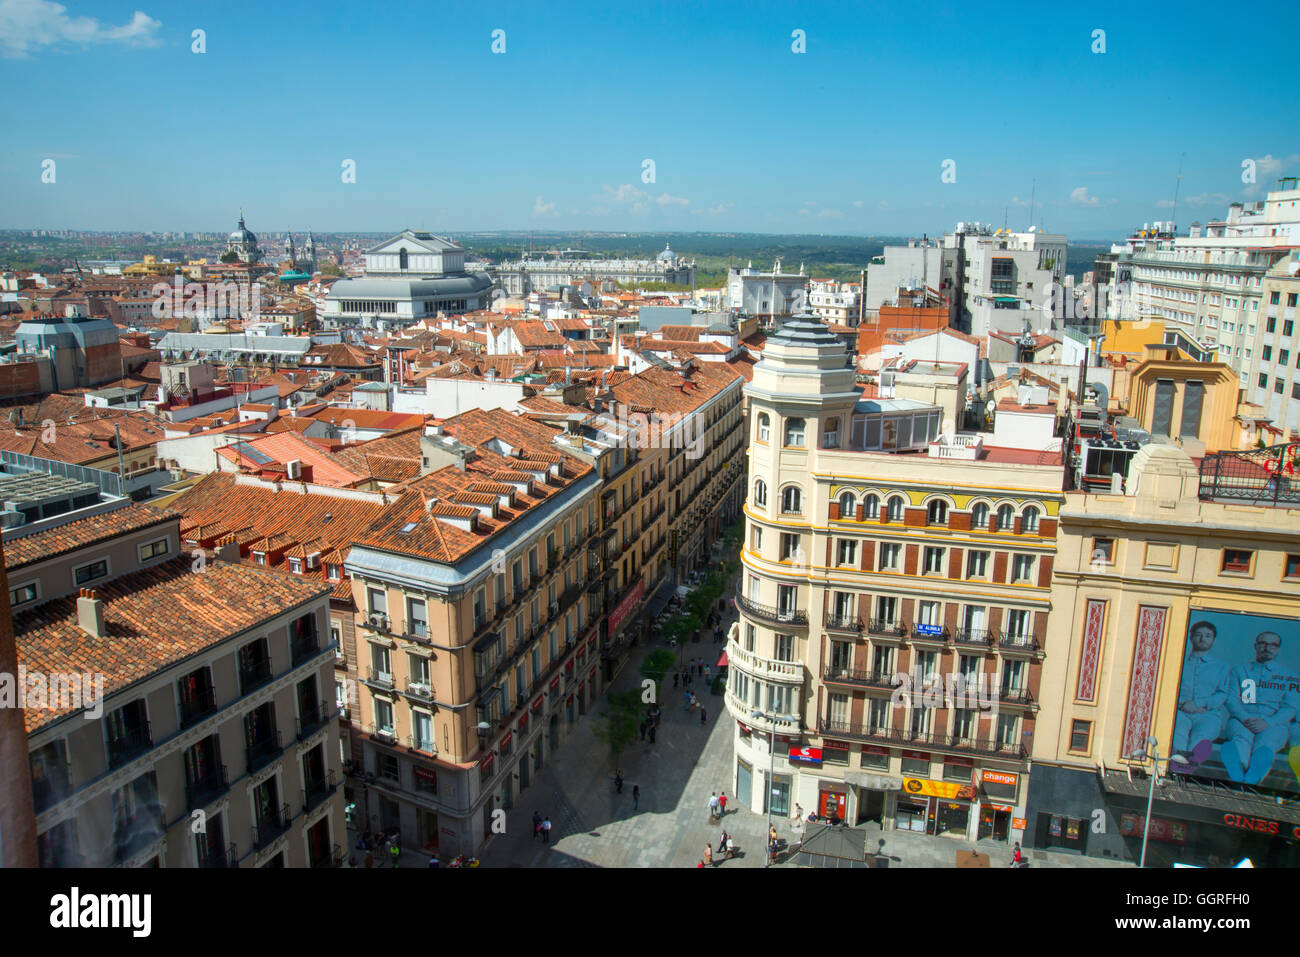 Overview. Callao Square, Madrid, Spain. - Stock Image